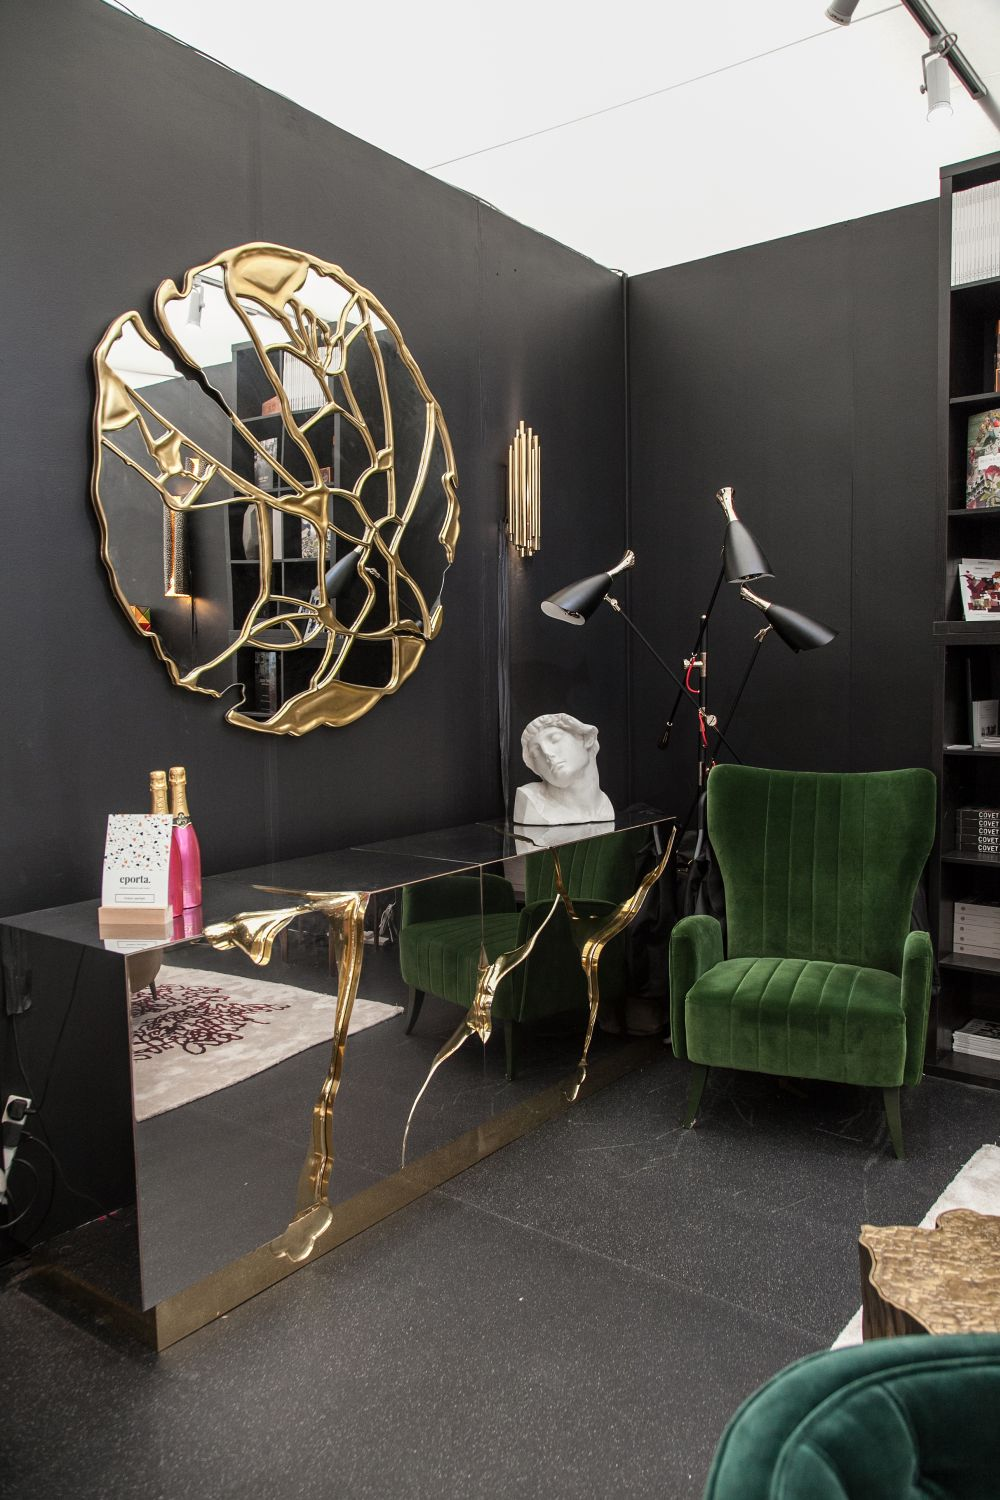 London\'s Decorex Focuses on Luxury Designs for the Home